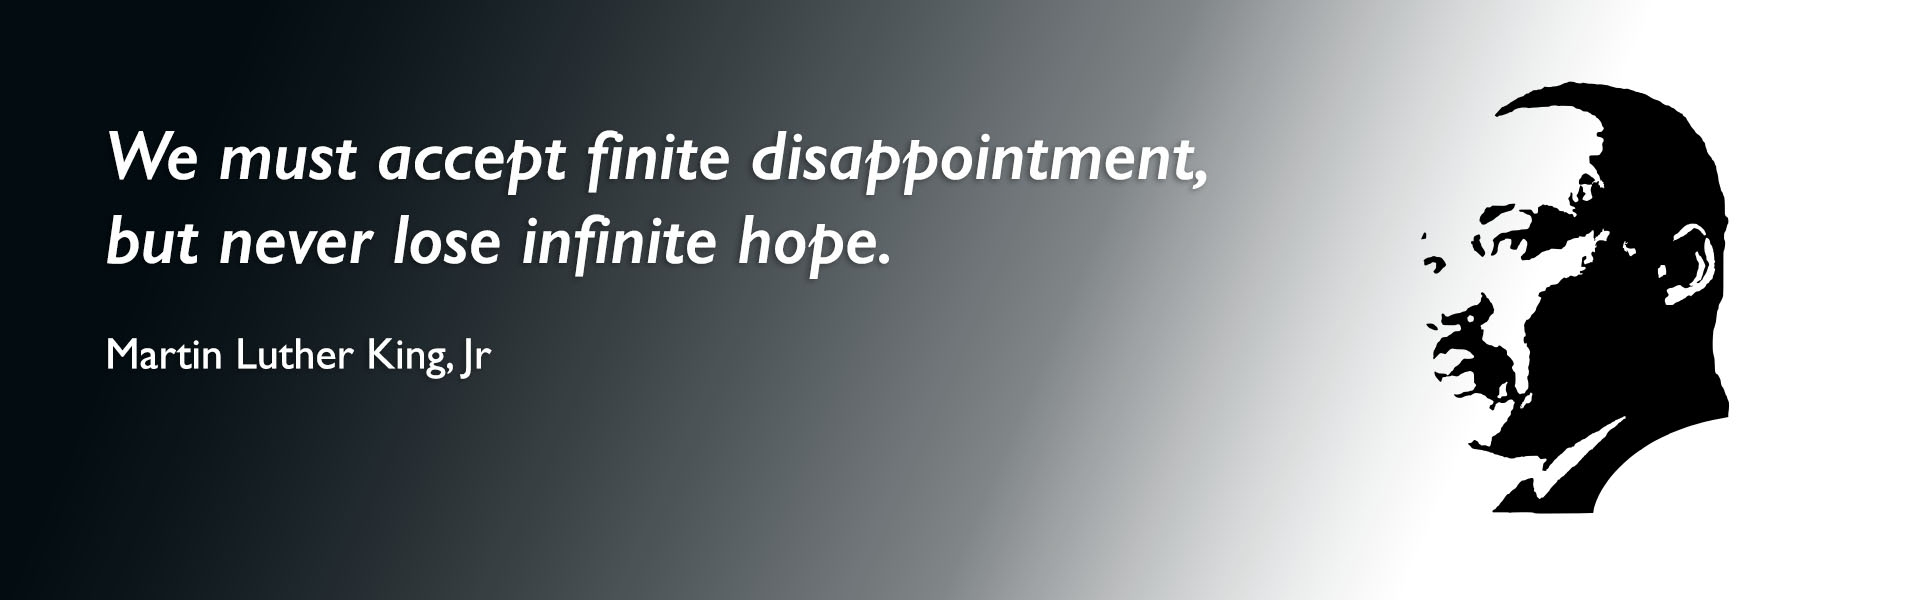 """We must accept finite disappointment, but never lose infinite hope."" – Martin Luther King, Jr silhouette"